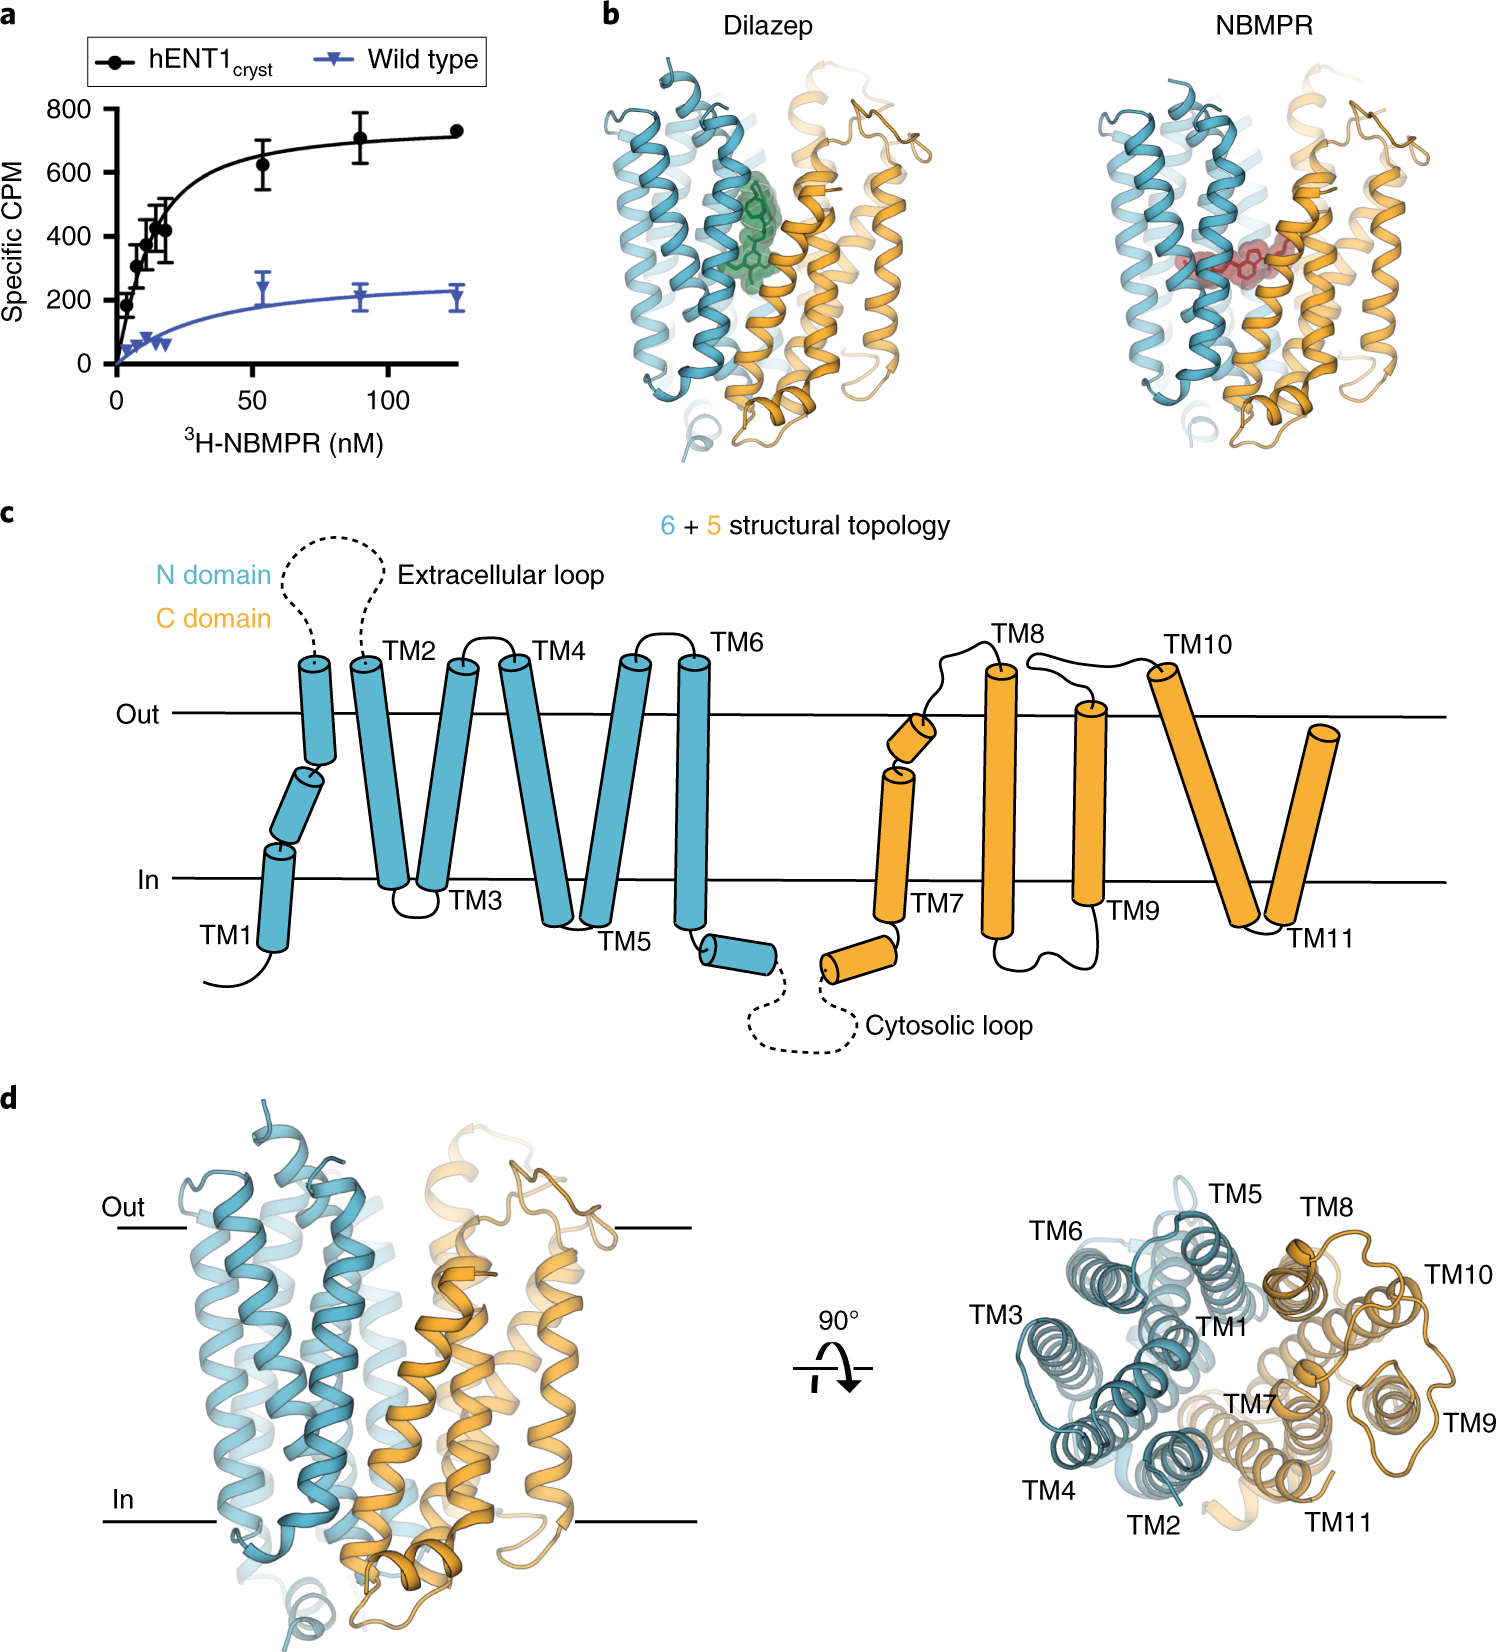 Structures of human ENT1 in complex with adenosine reuptake inhibitors